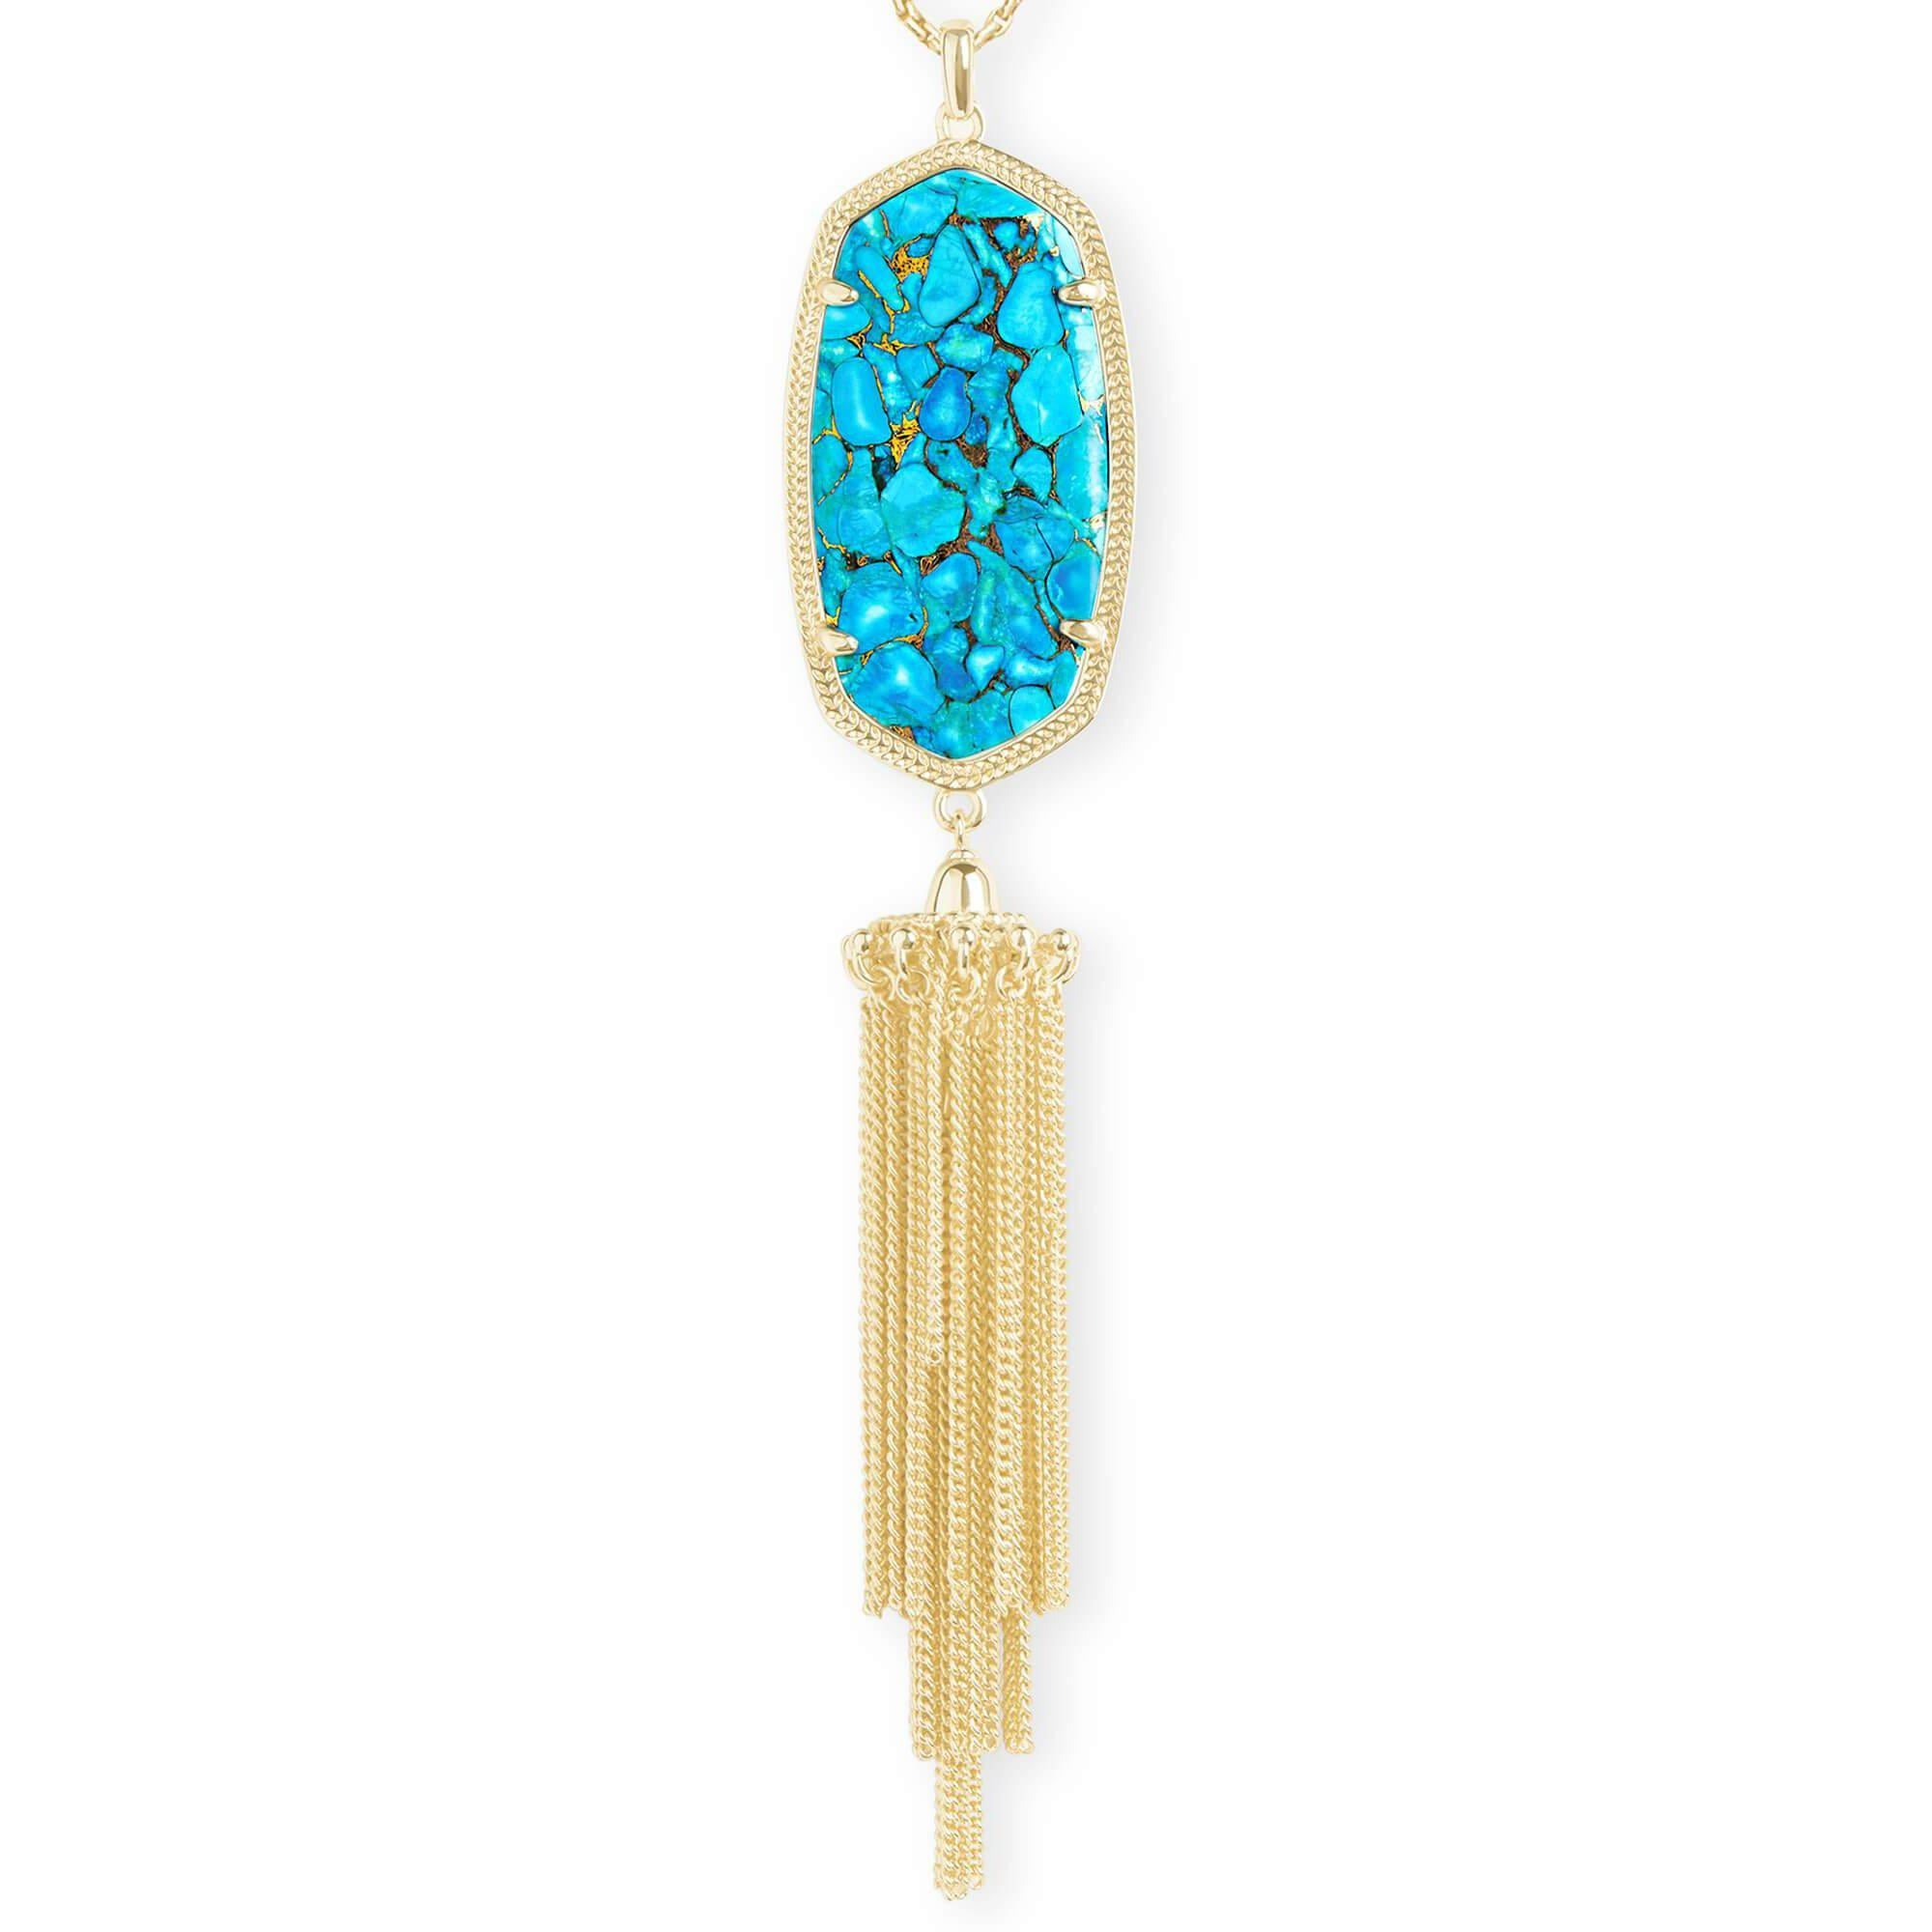 Rayne Gold Pendant Necklace In Bronze Veined Turquoise Magnesite